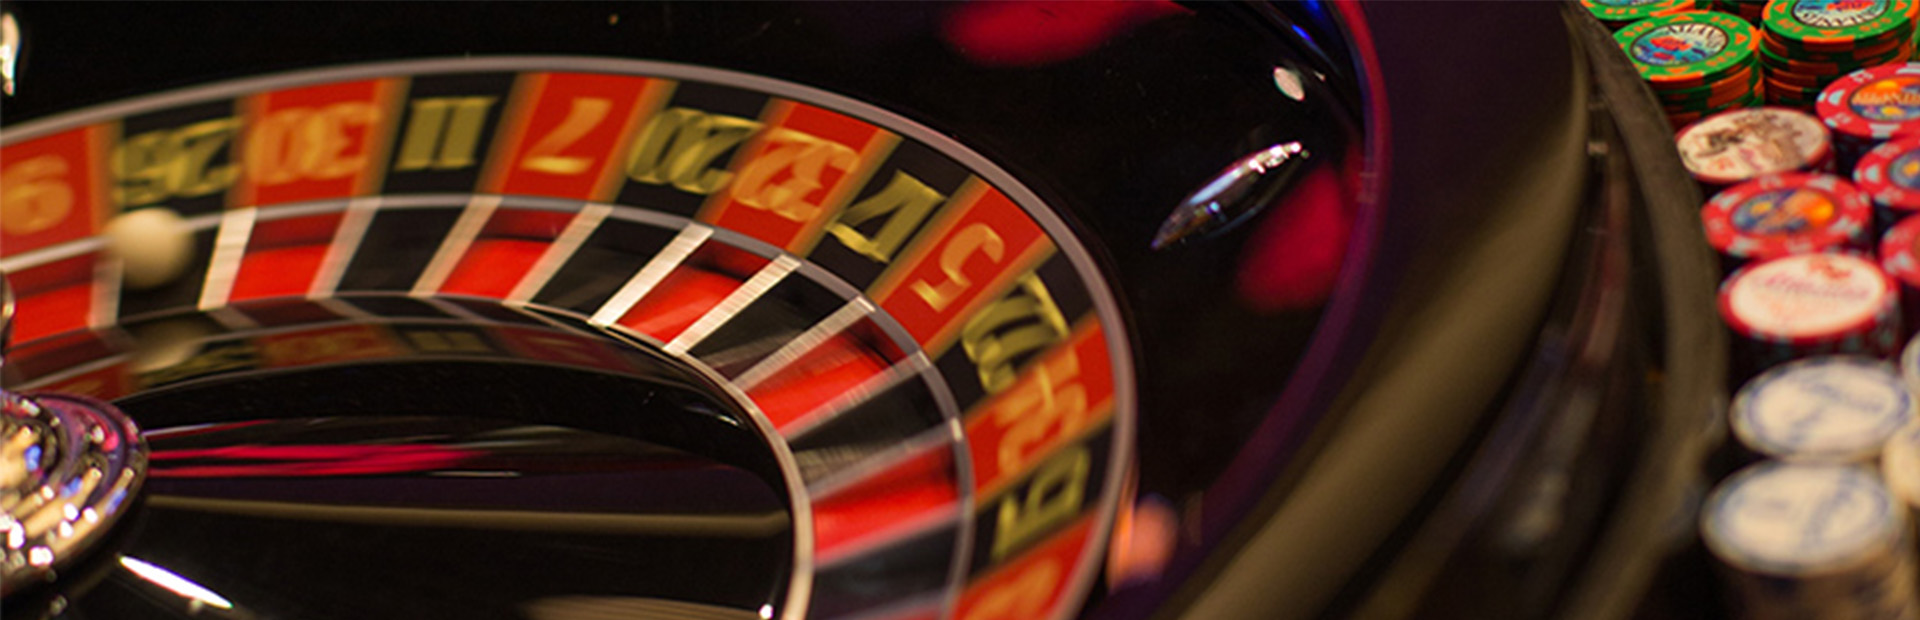 Close-up of roulette wheel and betting chips